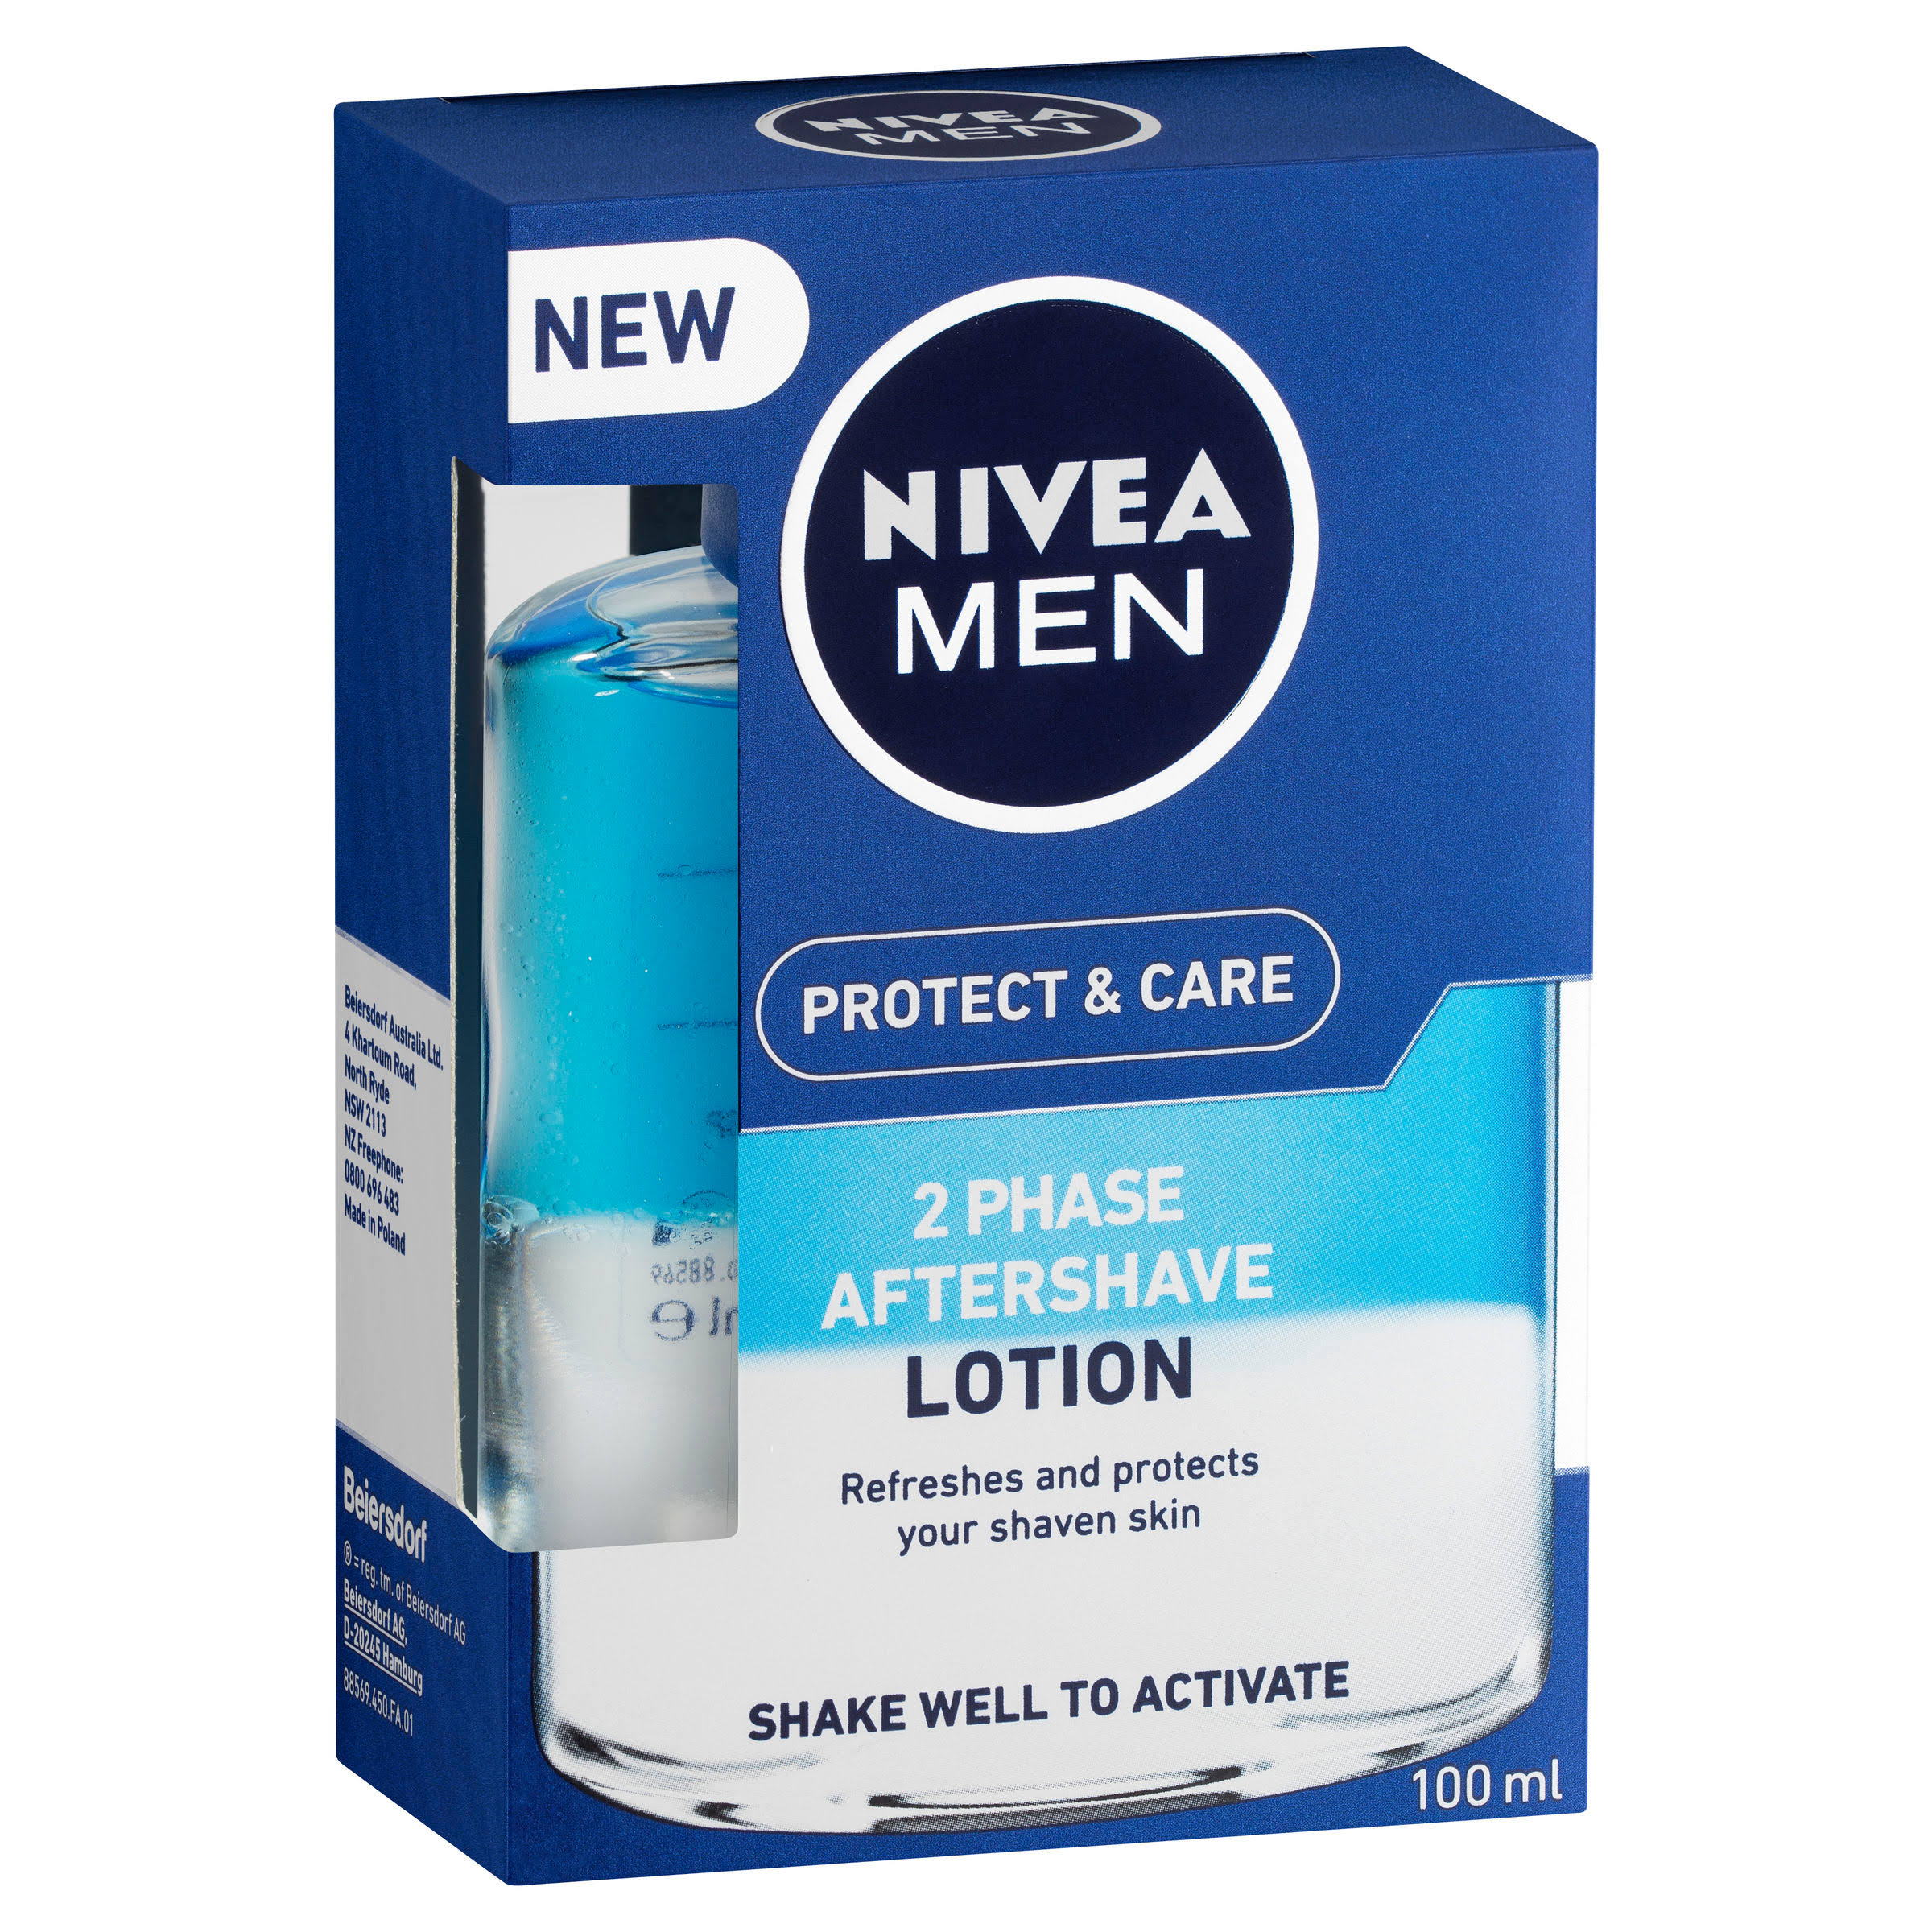 Nivea Men Protect and Care 2 Phase After Shave Lotion - 100ml